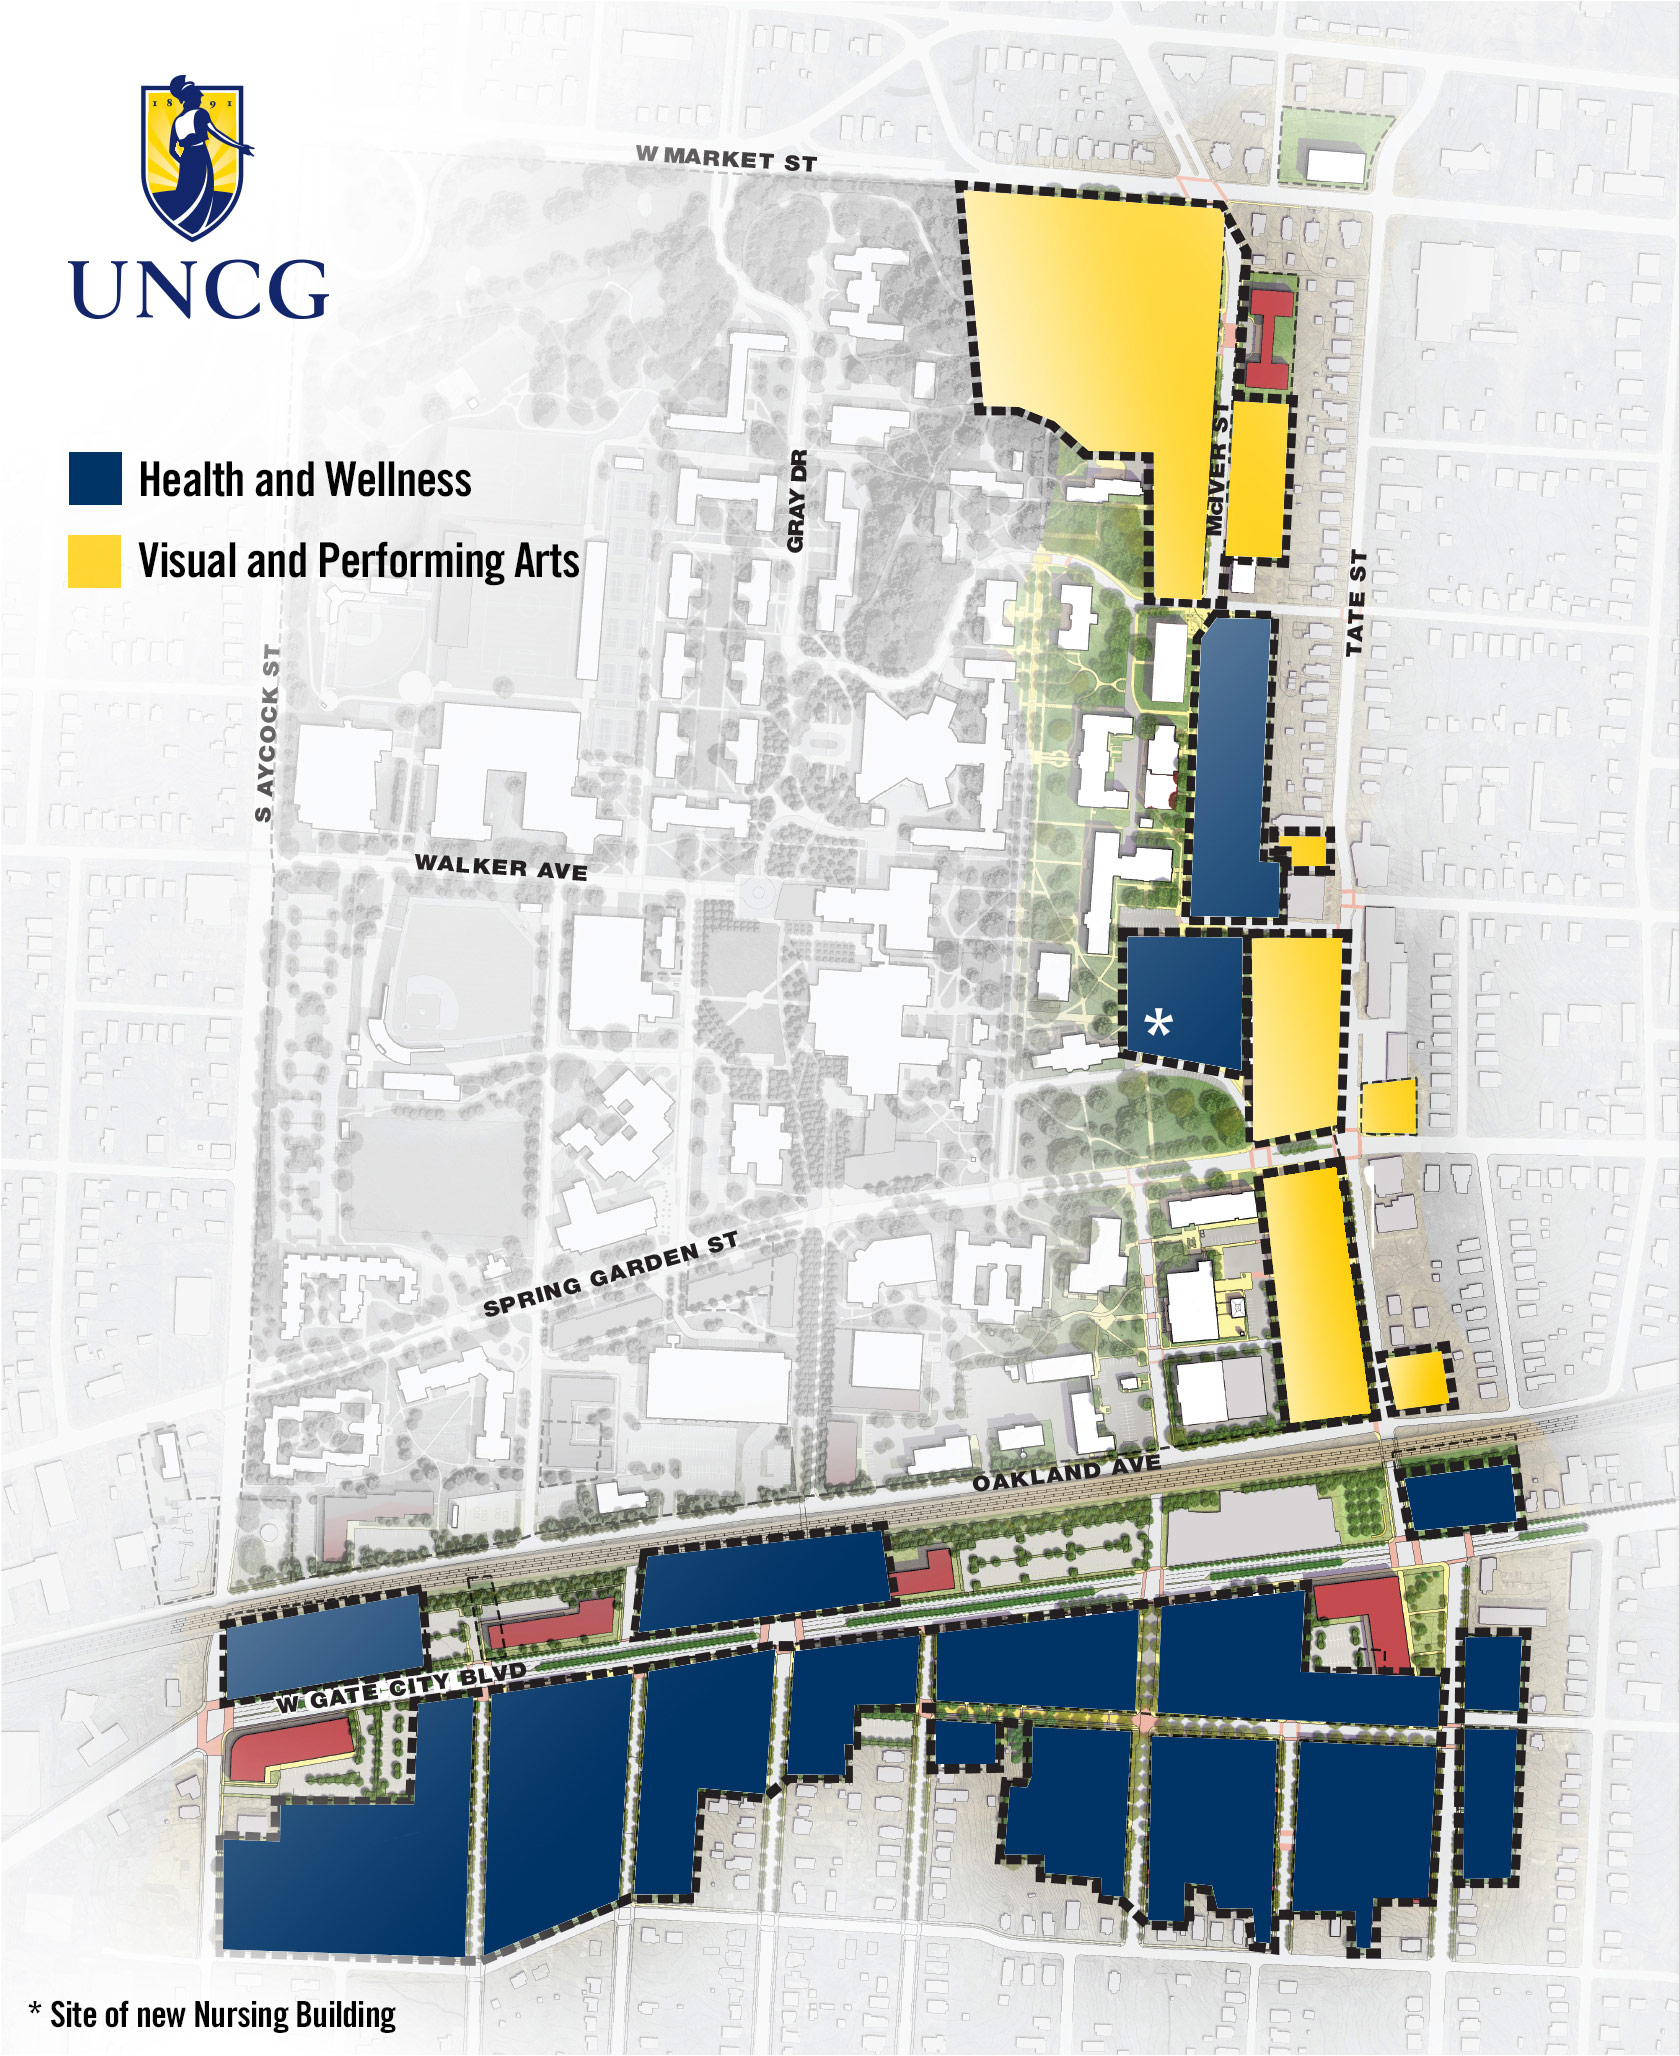 UNCG takes Giant Steps with Millennial Campus